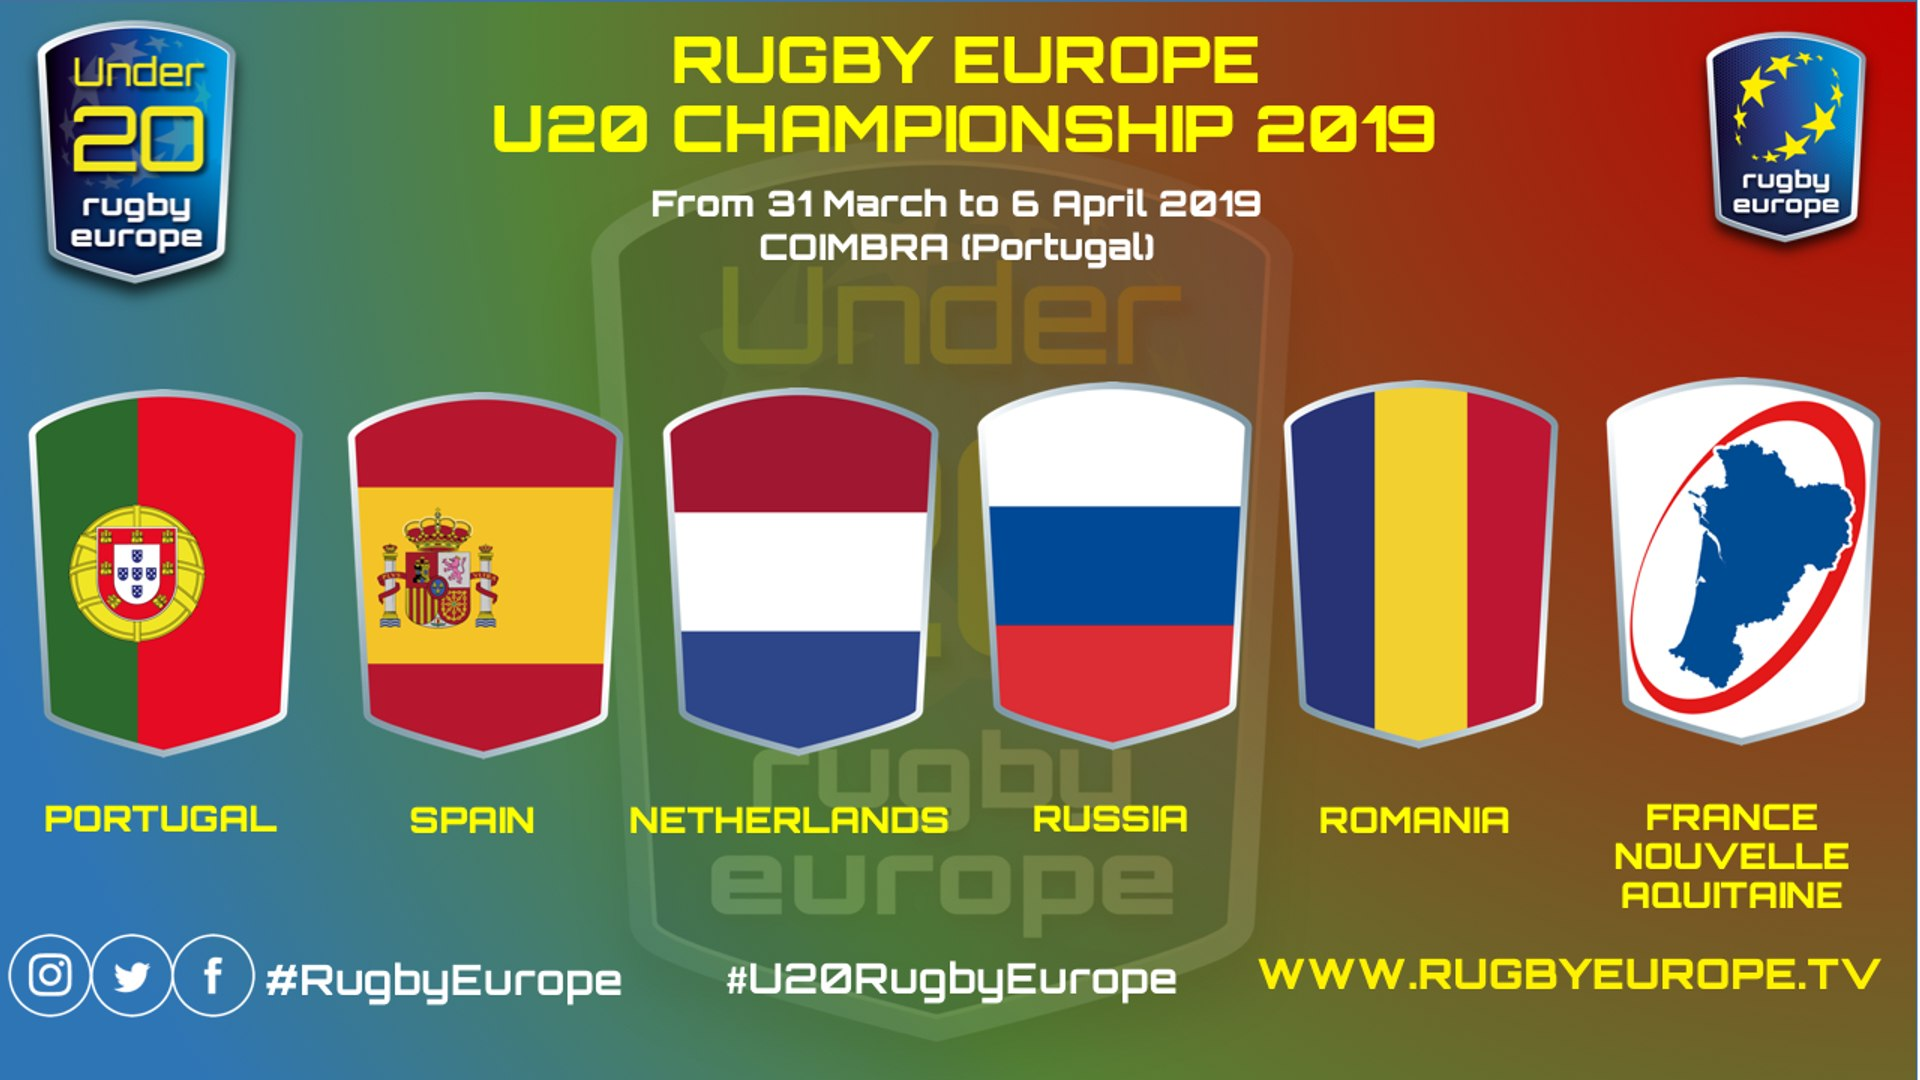 RUGBY EUROPE U20 CHAMPIONSHIP 2019 - COIMBRA - 31 MARCH => 6 APRIL 2019